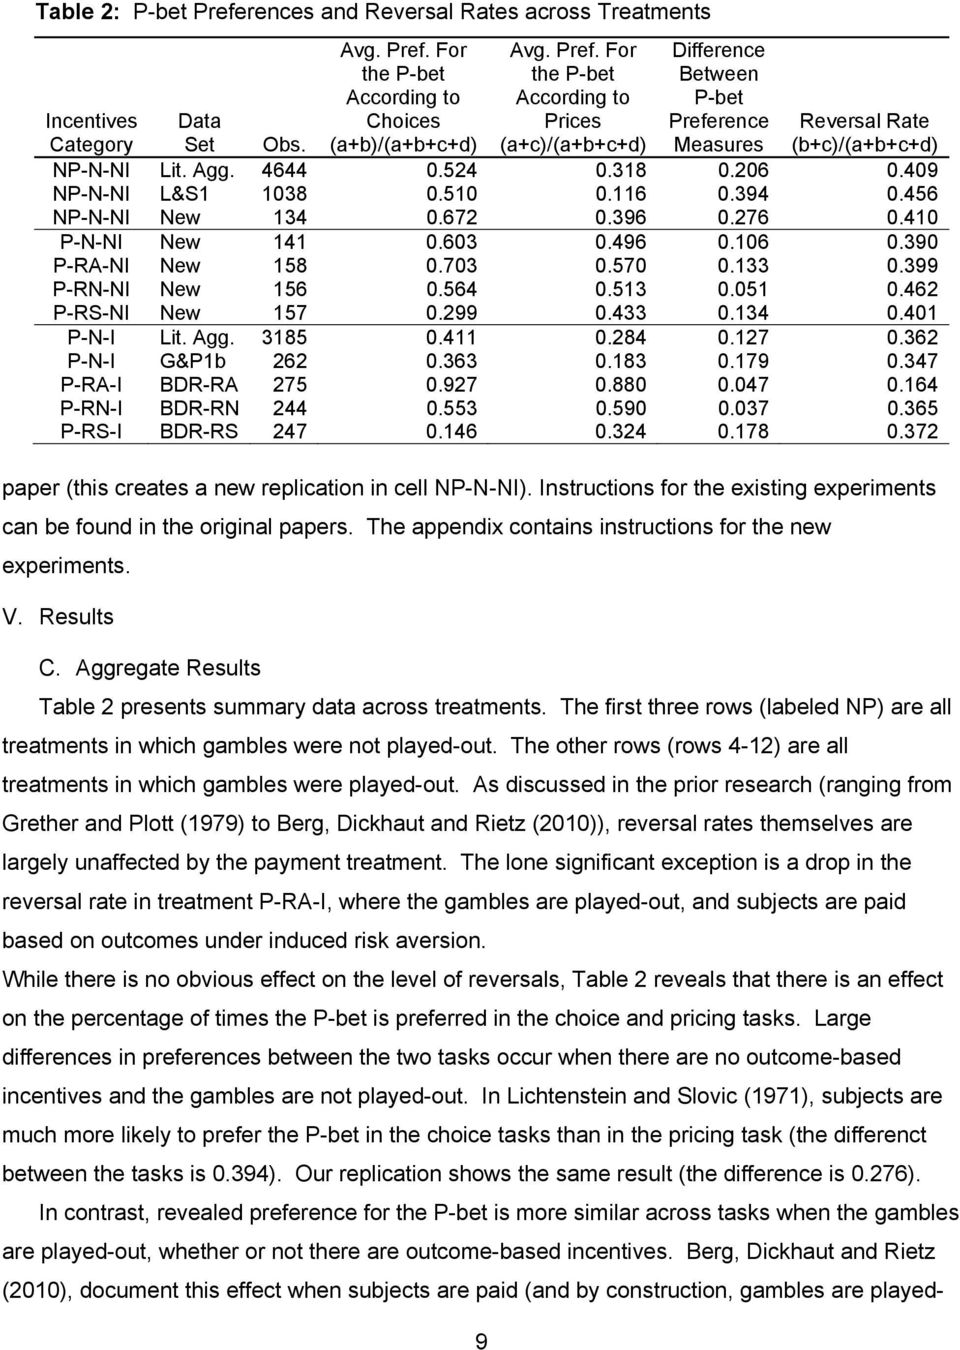 Aggregate Results Table 2 presents summary data across treatments. The first three rows (labeled NP) are all treatments in which gambles were not played-out.